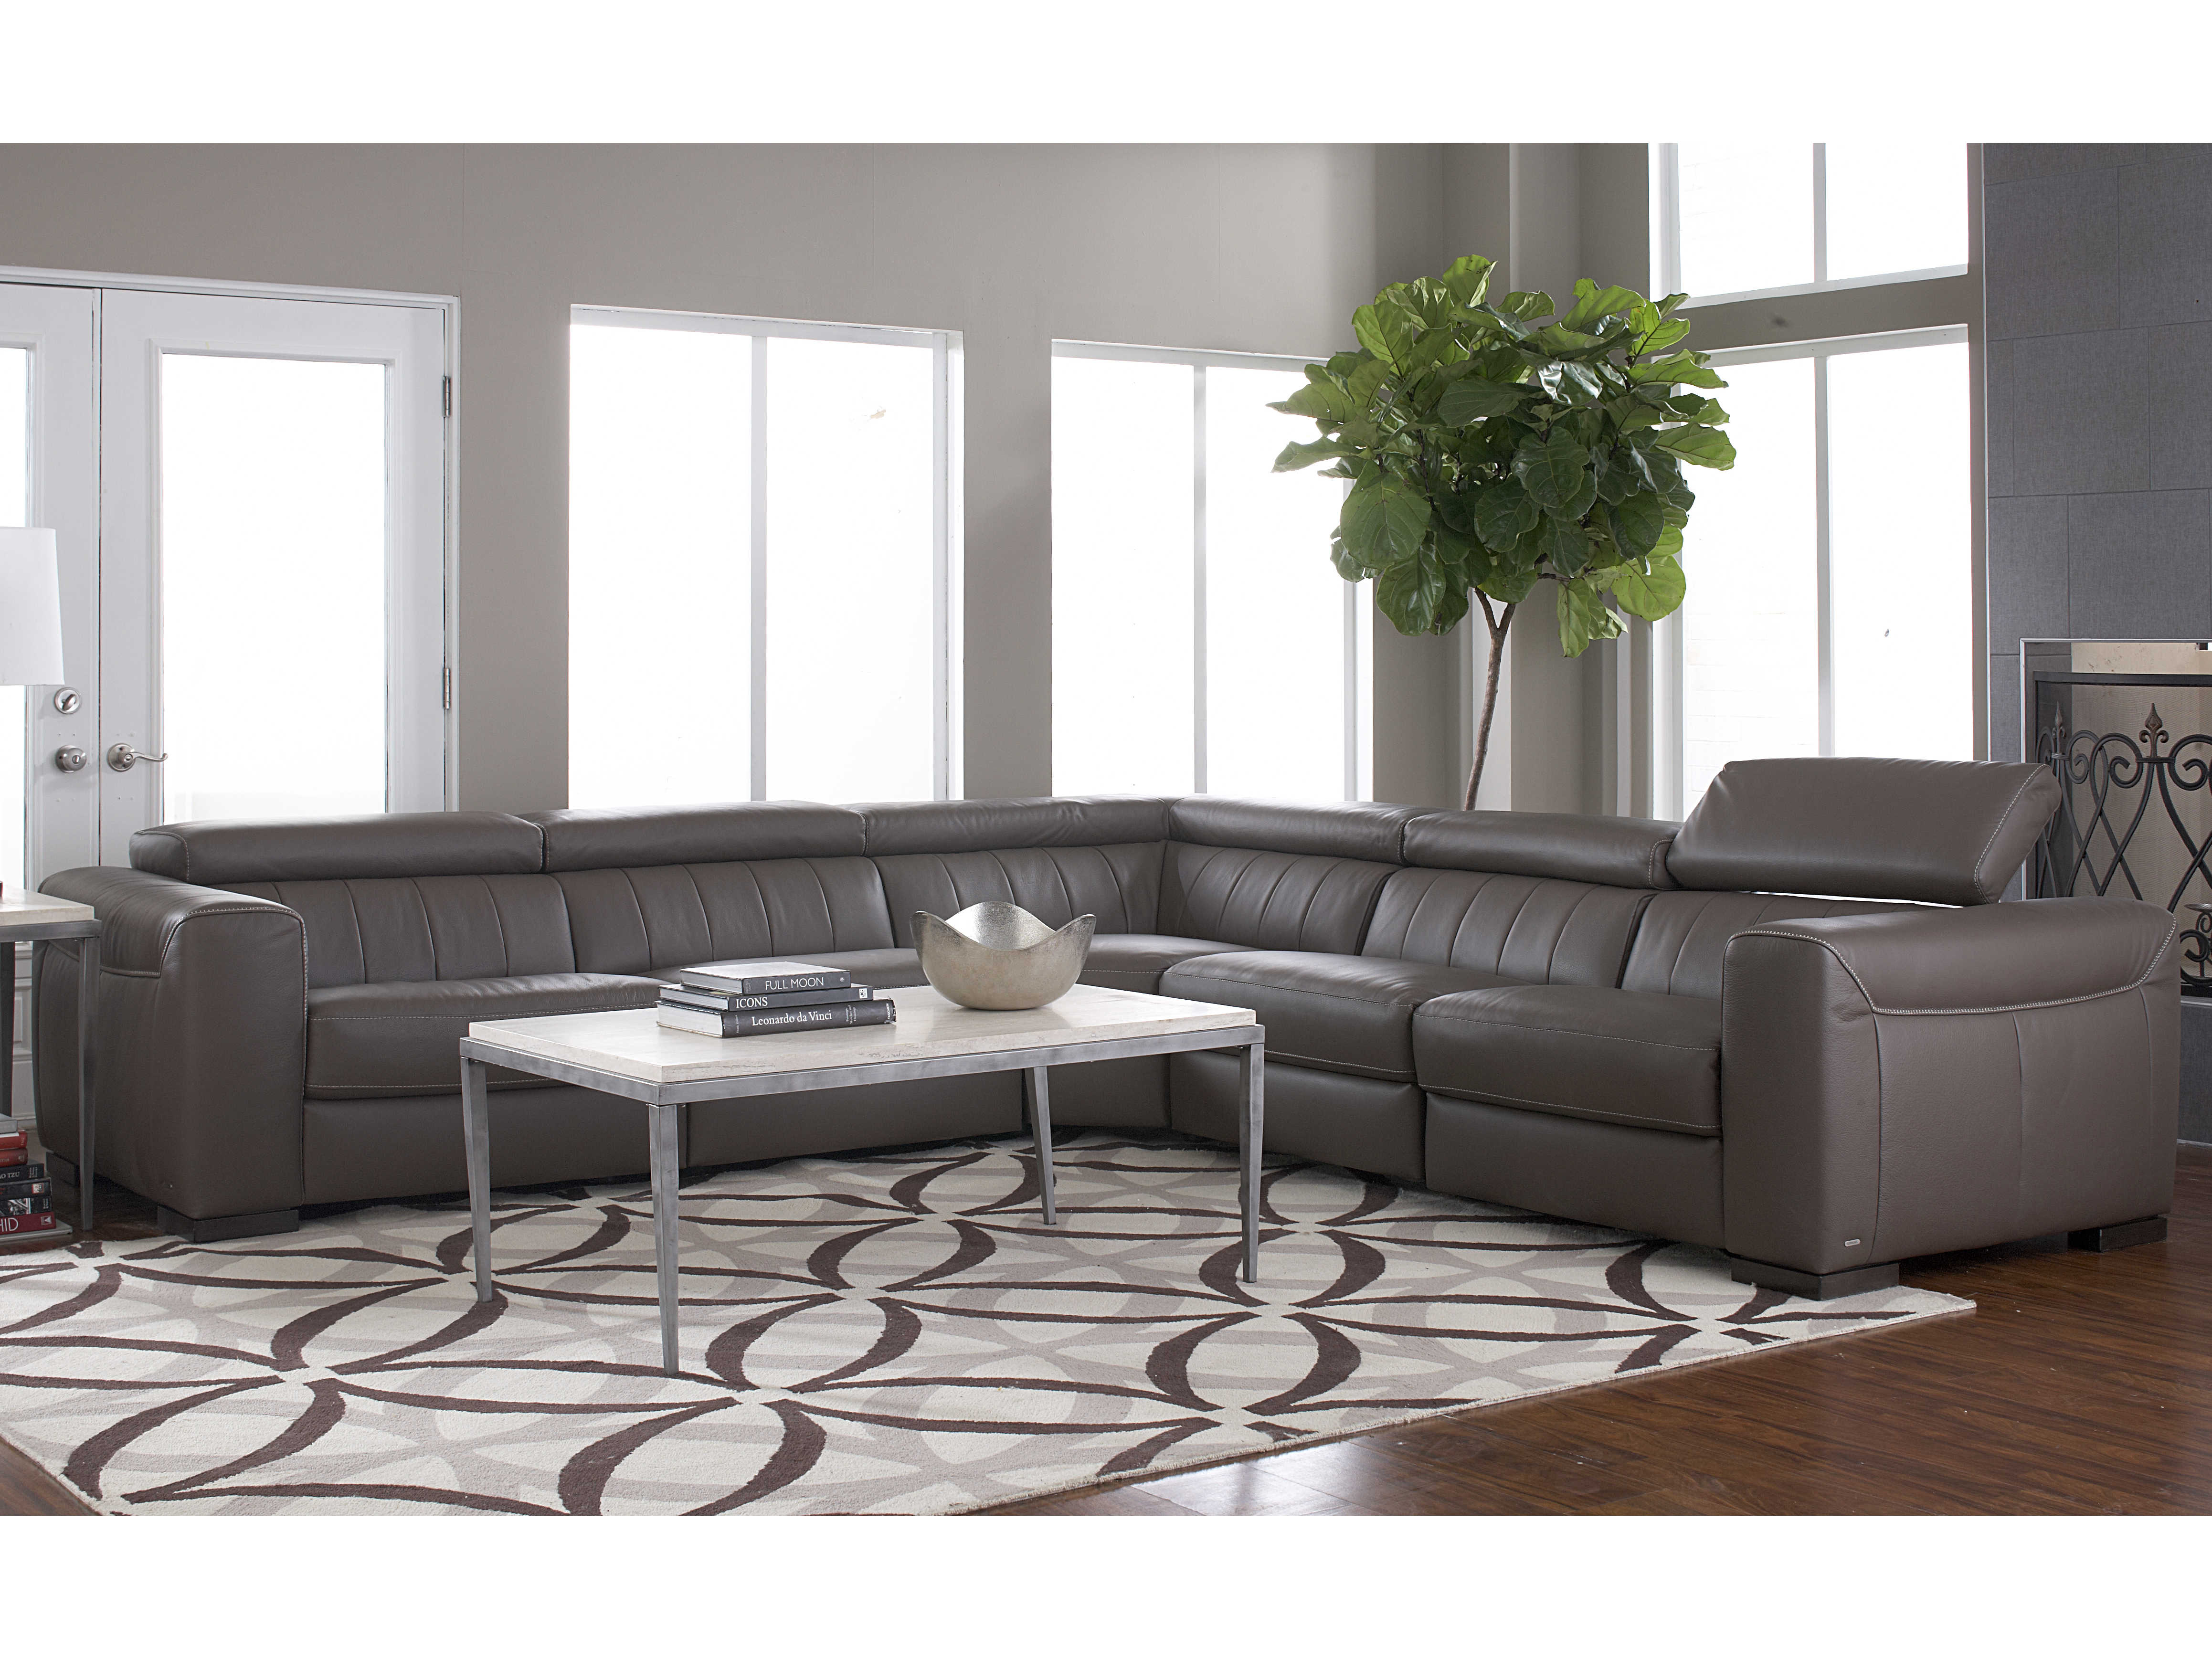 Natuzzi Editions Forza Sectional Sofa